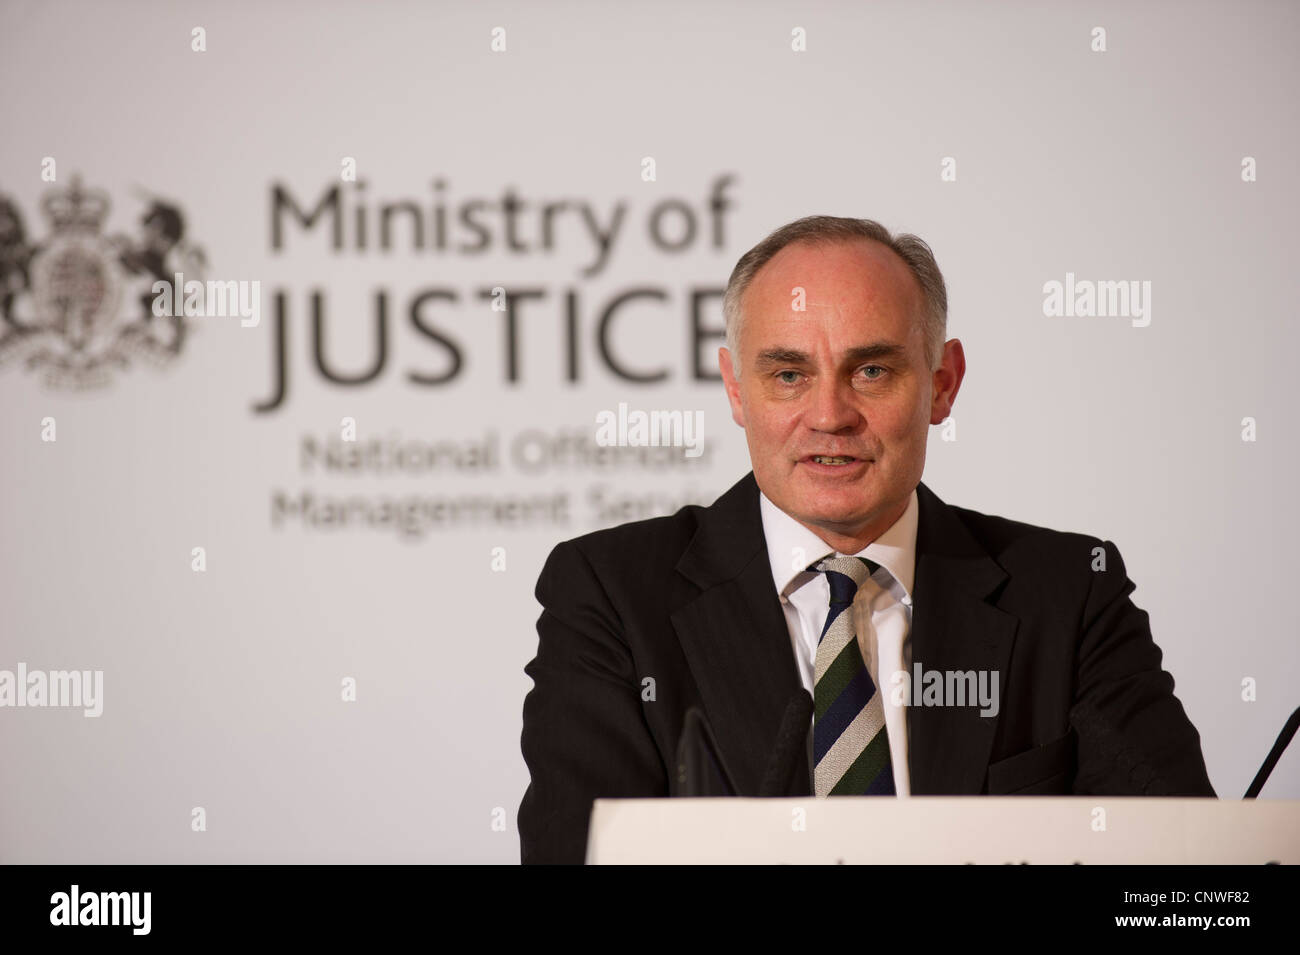 Crispin Blunt MP, Conservative Reigate, Parliamentary Under Secretary of State for Prisons and Youth Justice. - Stock Image